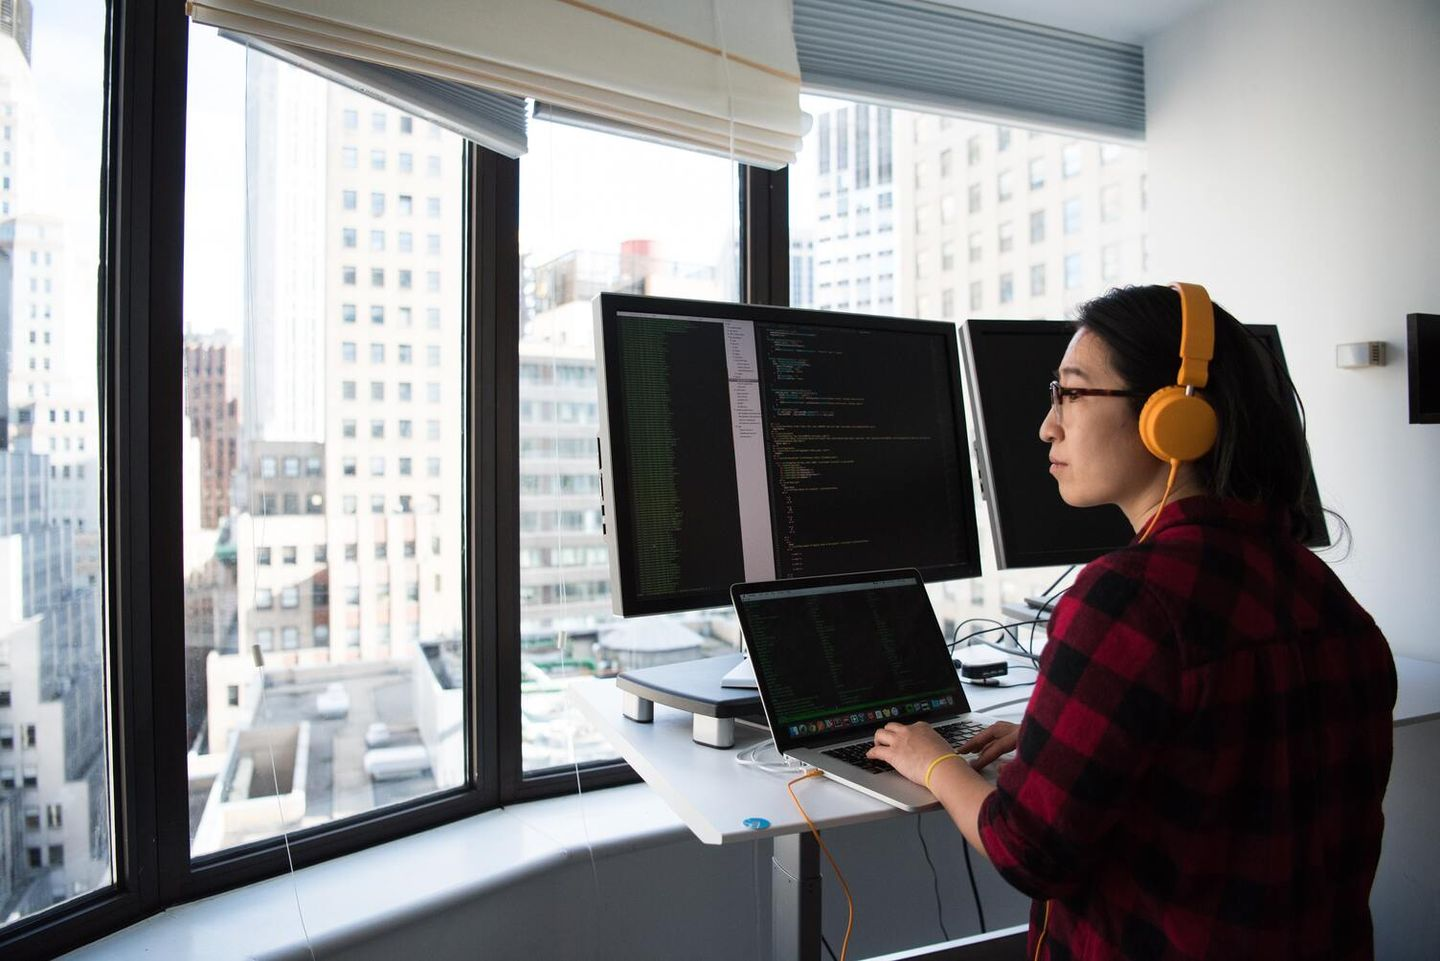 Woman brainstorming in front of computer wondering what is the main purpose of brainstorming